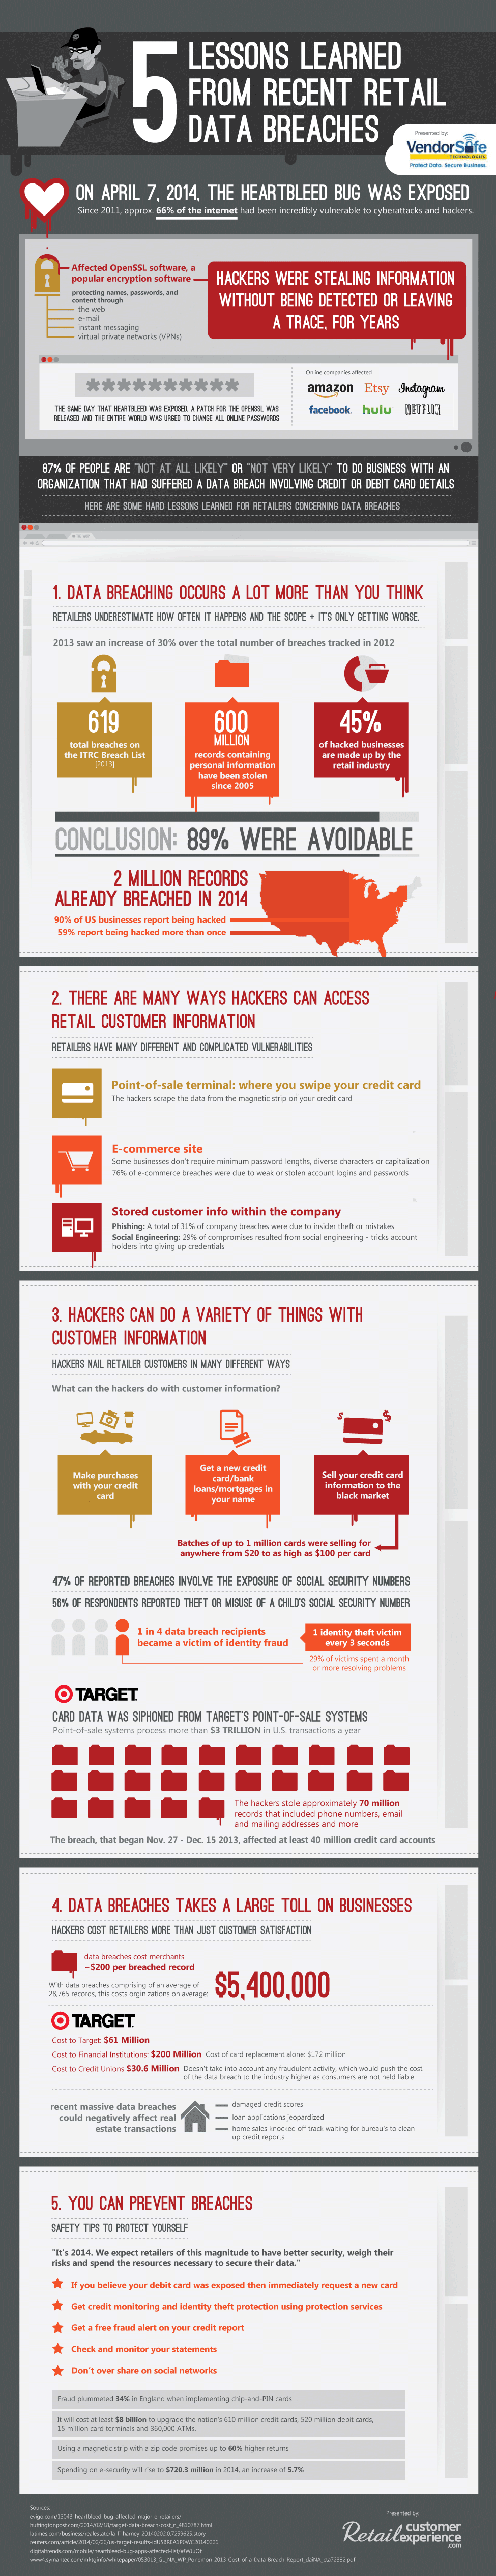 5 Lessons Learned From Recent Retail Data Breaches [infographic]